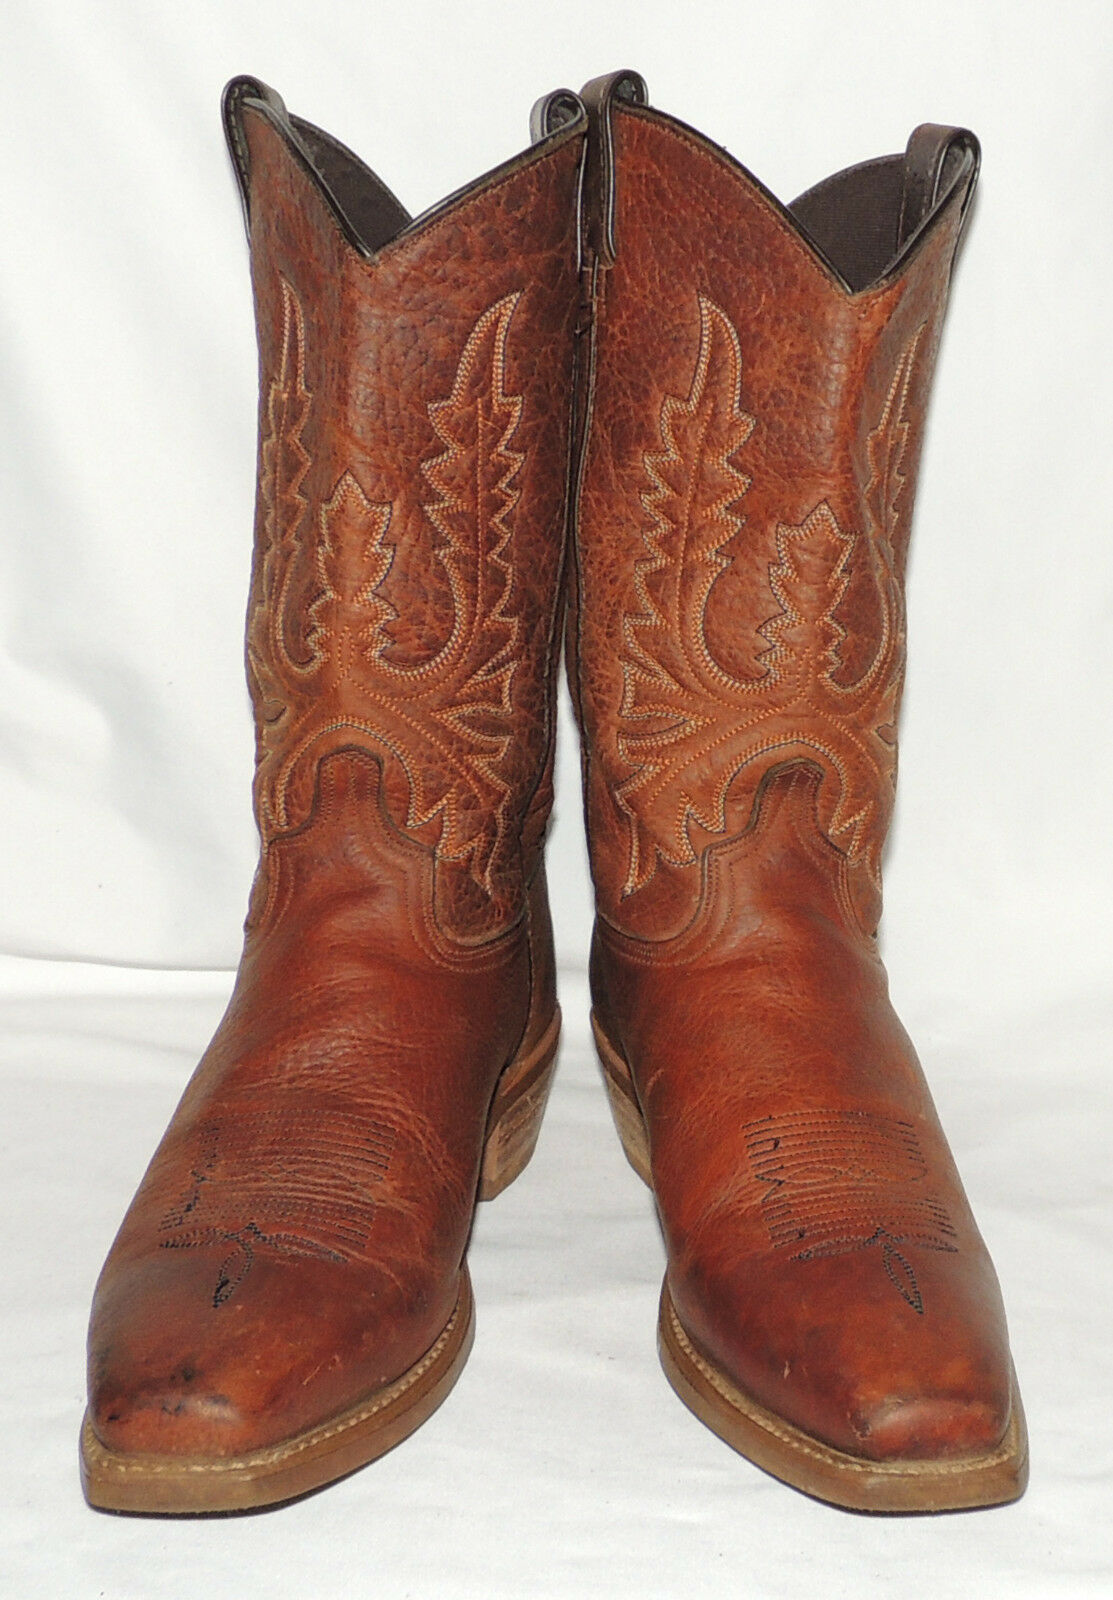 WOMEN'S ABILENE 'OILED BROWN' 9 WESTERN BOOTS SIZE 9 BROWN' M a01c52